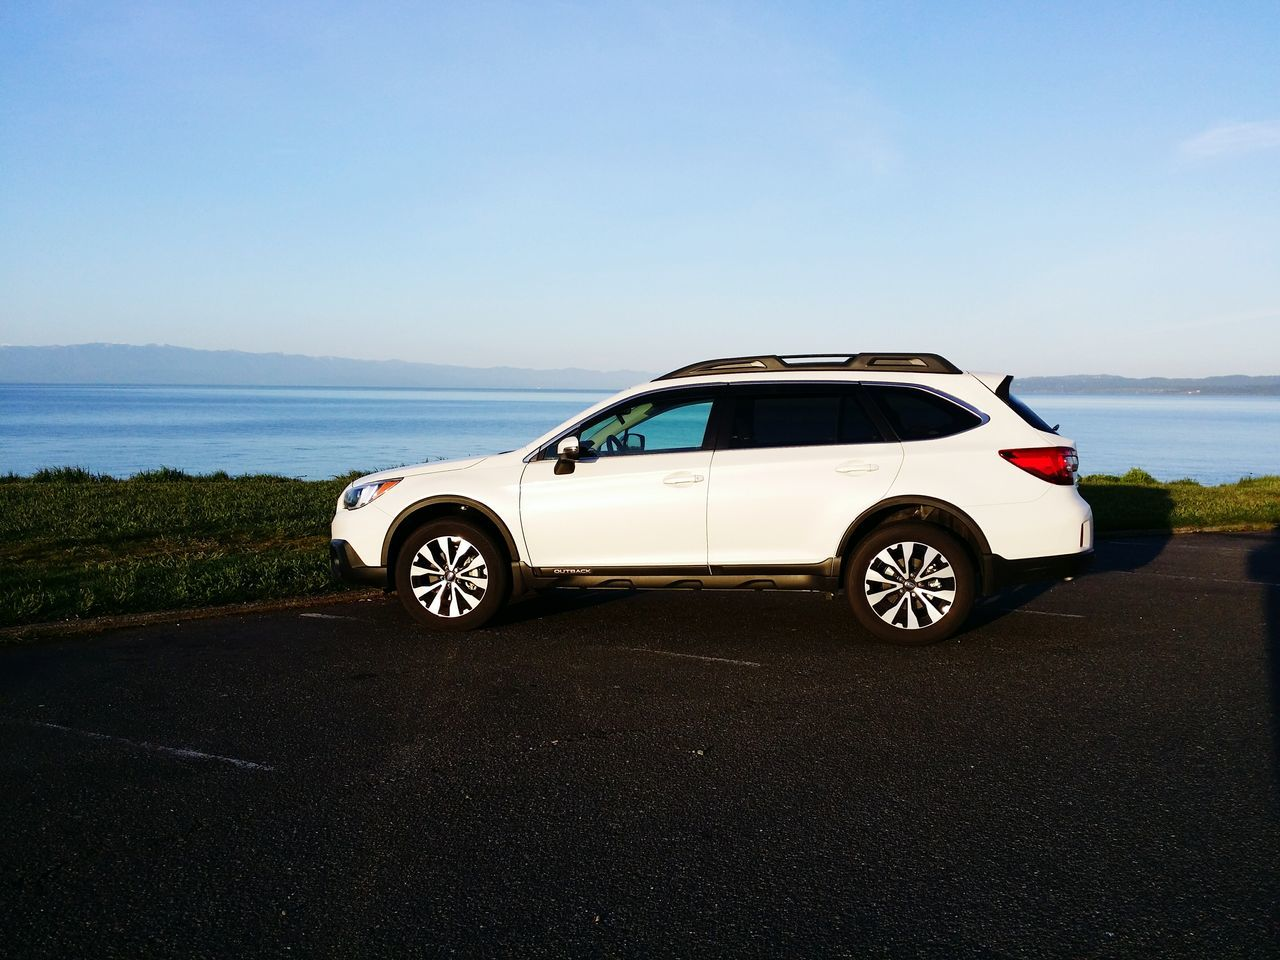 car, transportation, road, land vehicle, day, no people, sea, blue, sky, horizon over water, nature, outdoors, water